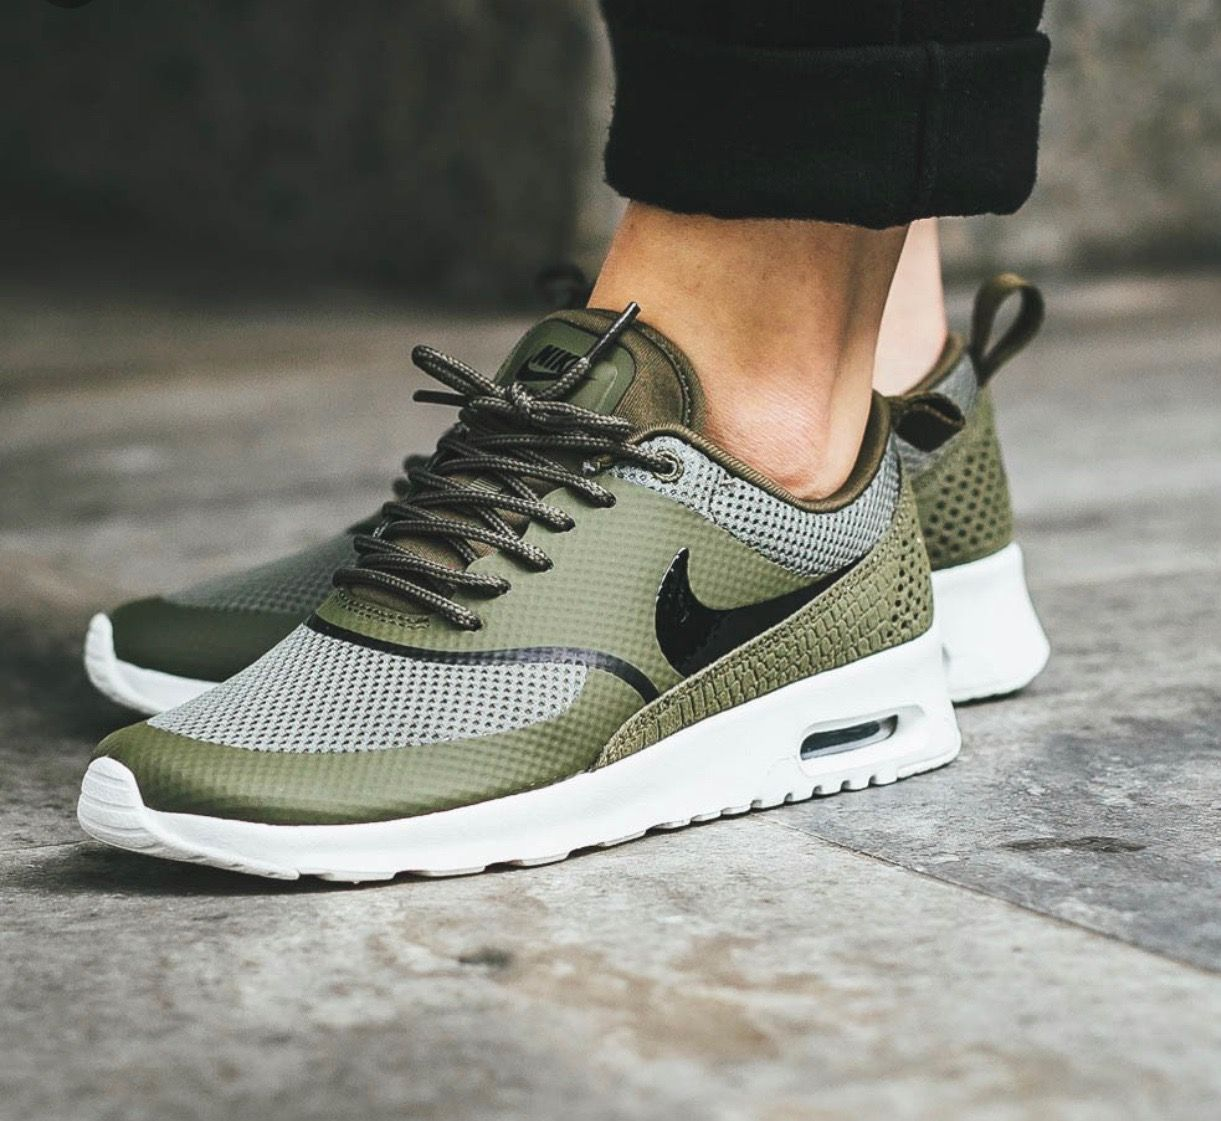 Nike Air Max Thea W shoes olive white | WeAre Shop